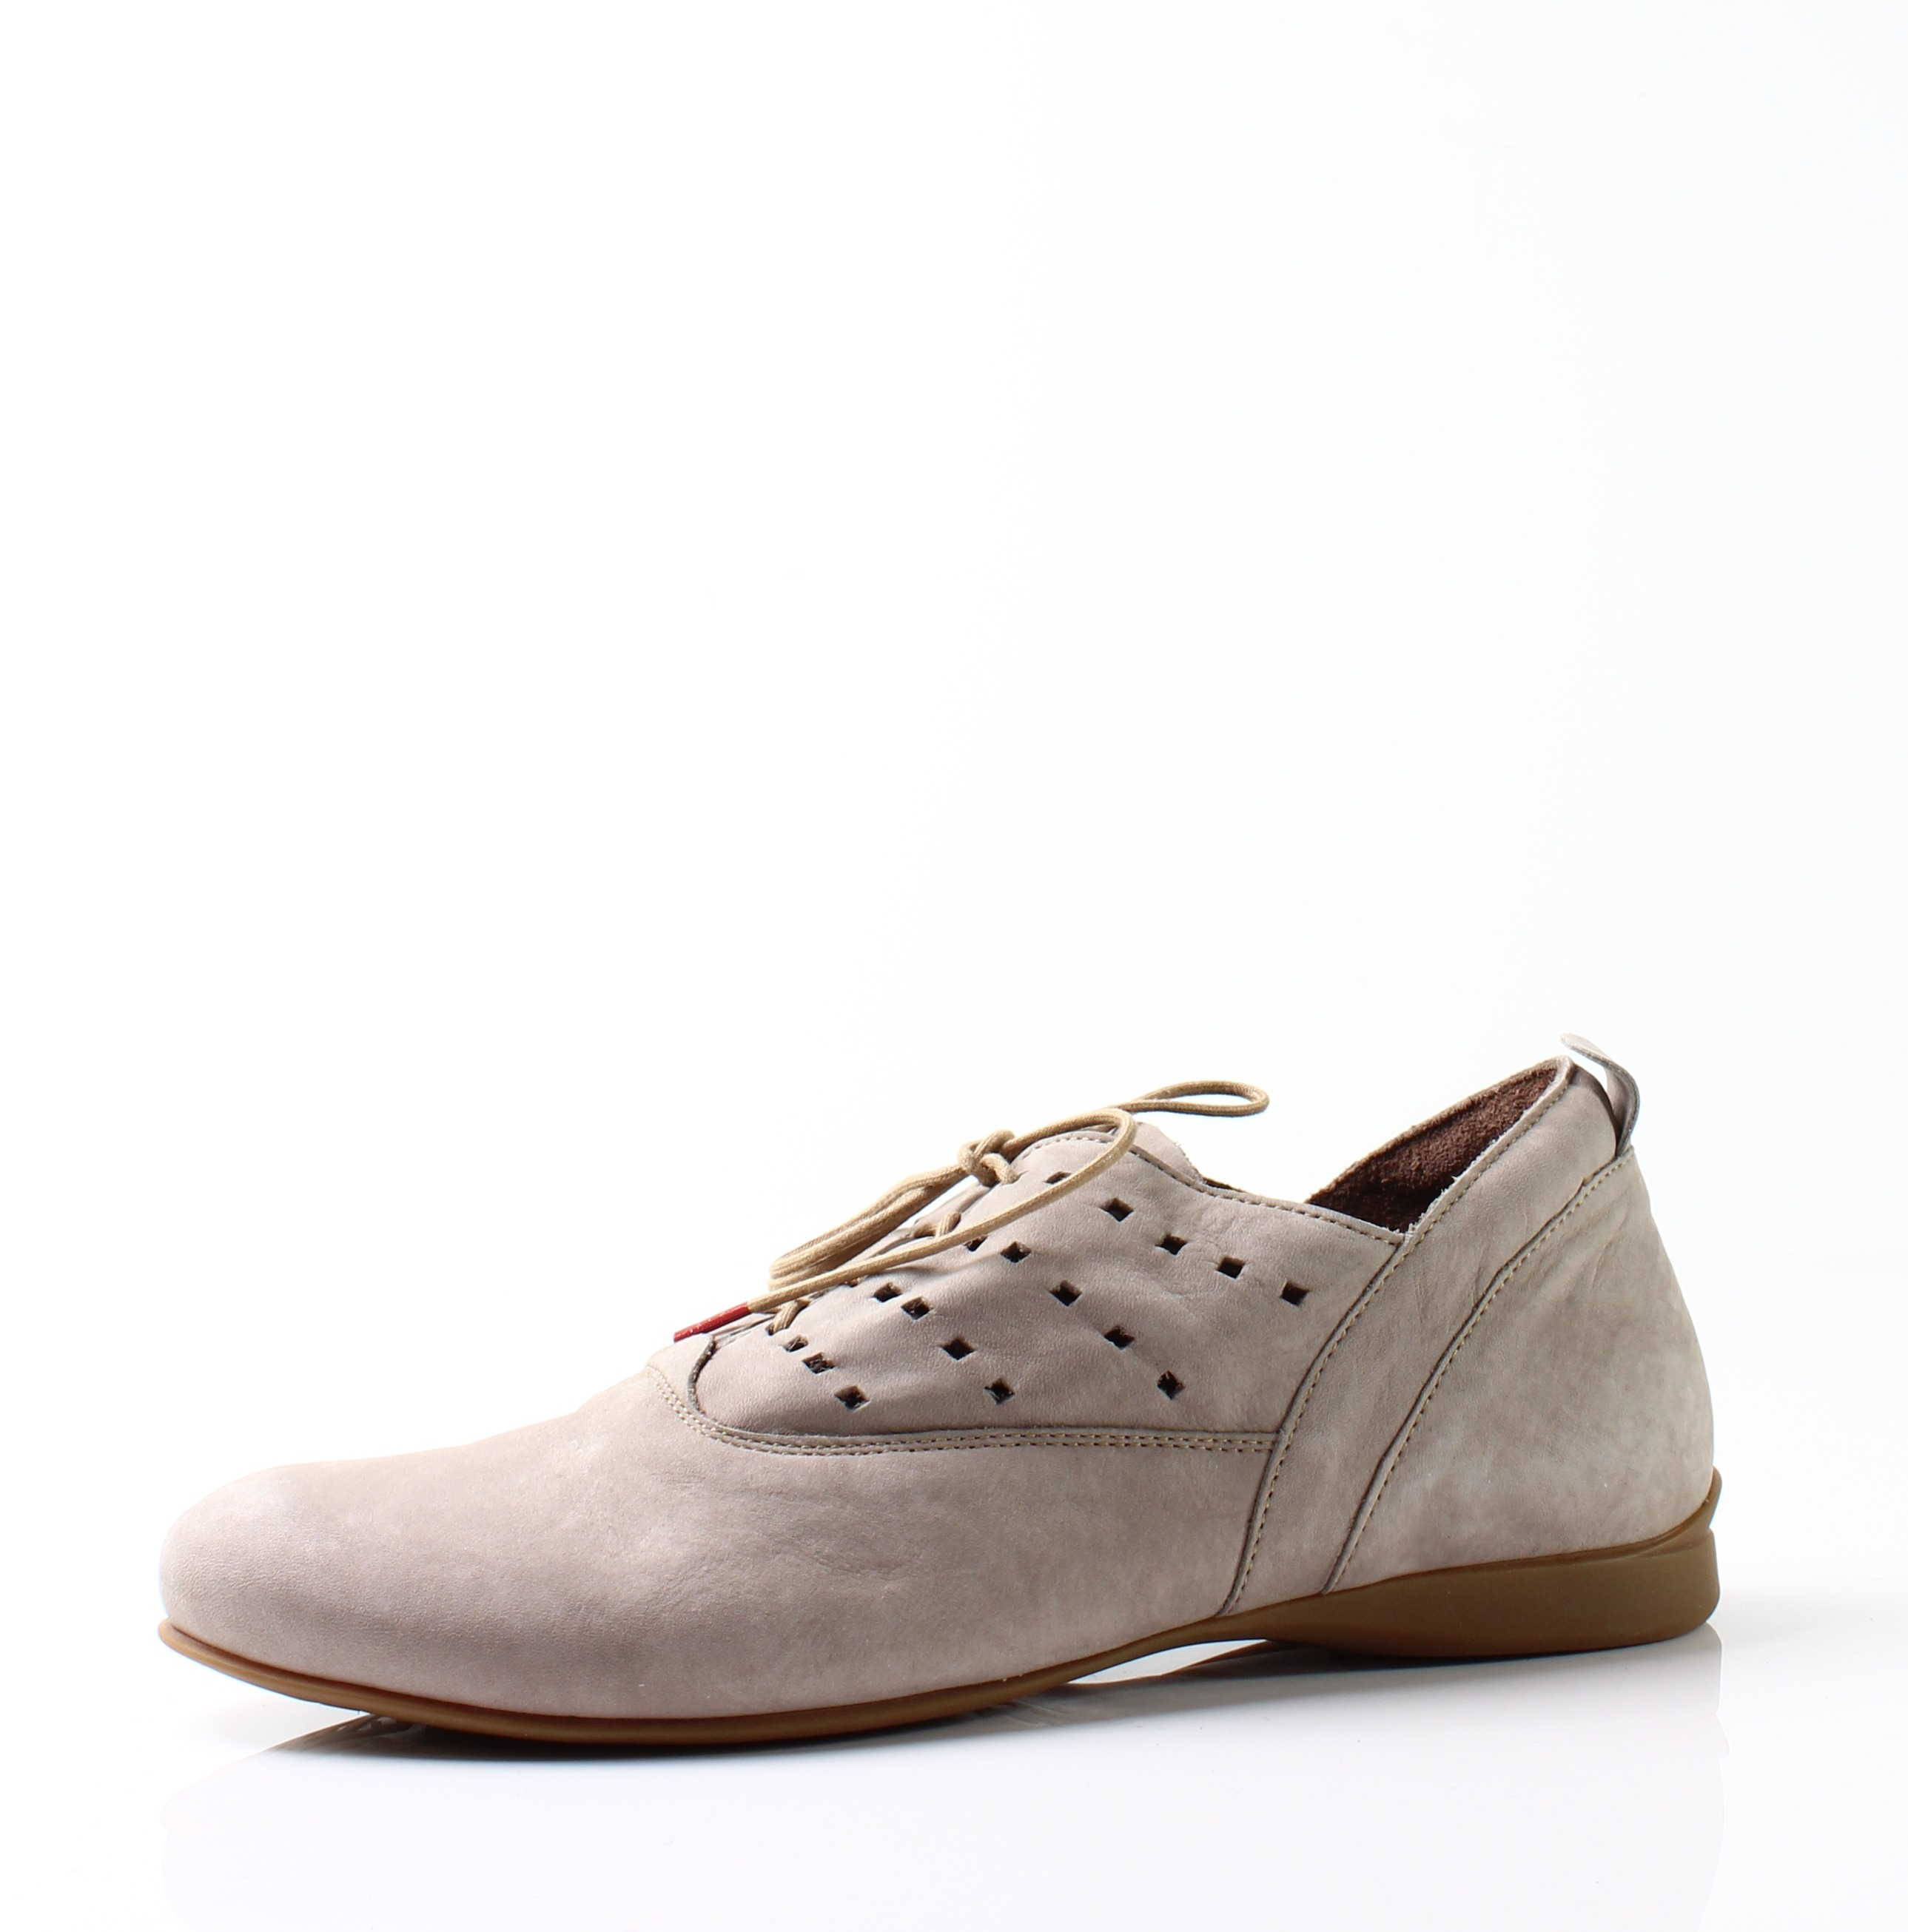 Think! New Kork Beige Women's Shoes Size 7M Lace-Up Suede Oxfords by Think!